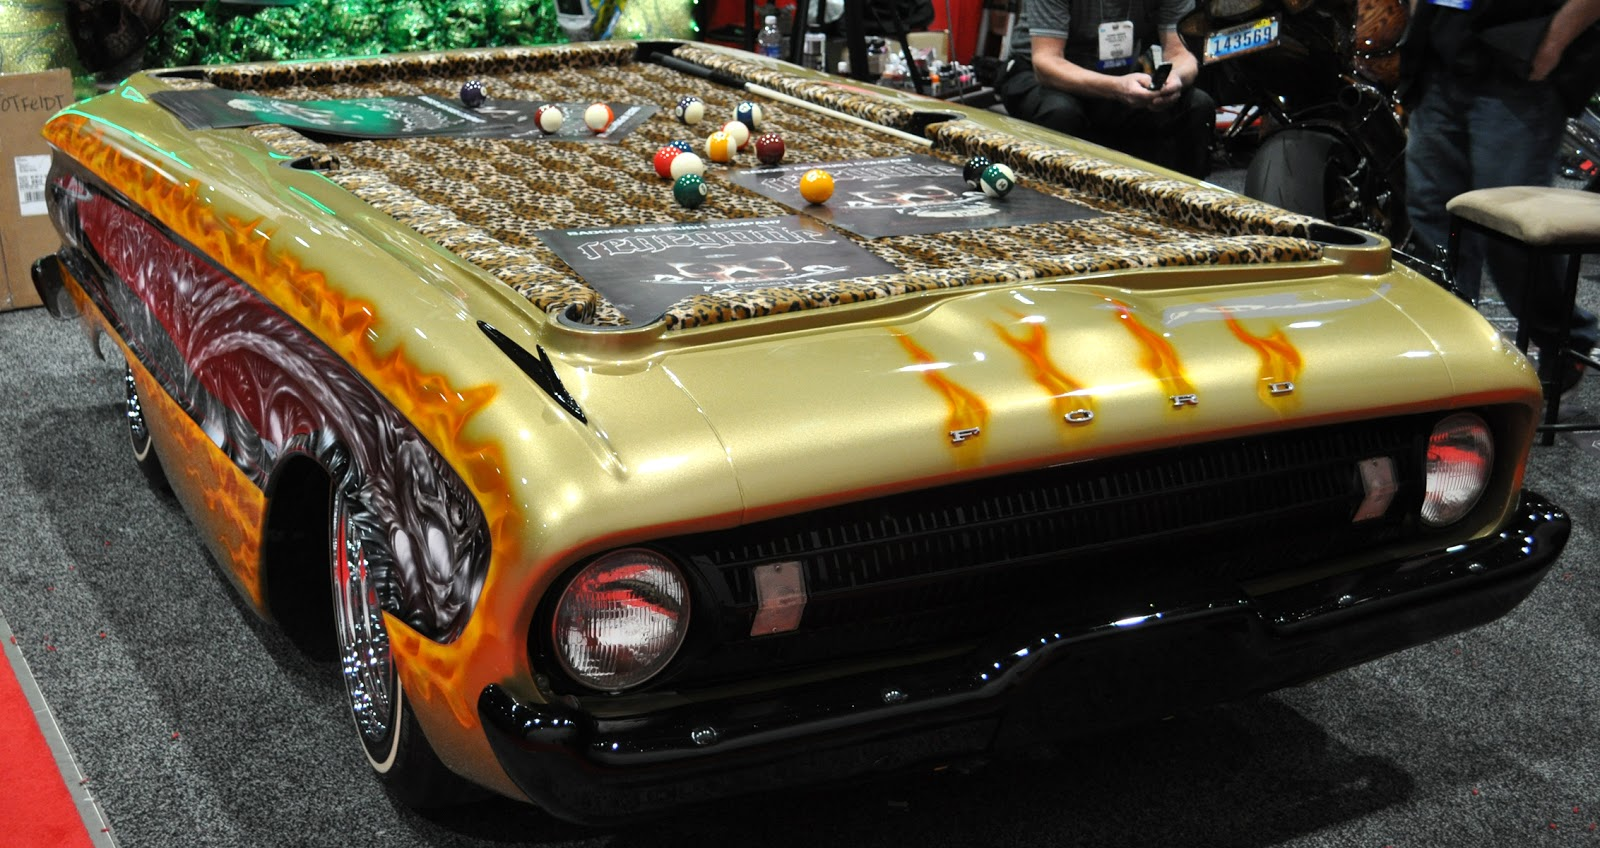 Just A Car Guy Counts Kustoms Had A Falcon With Very Little Good